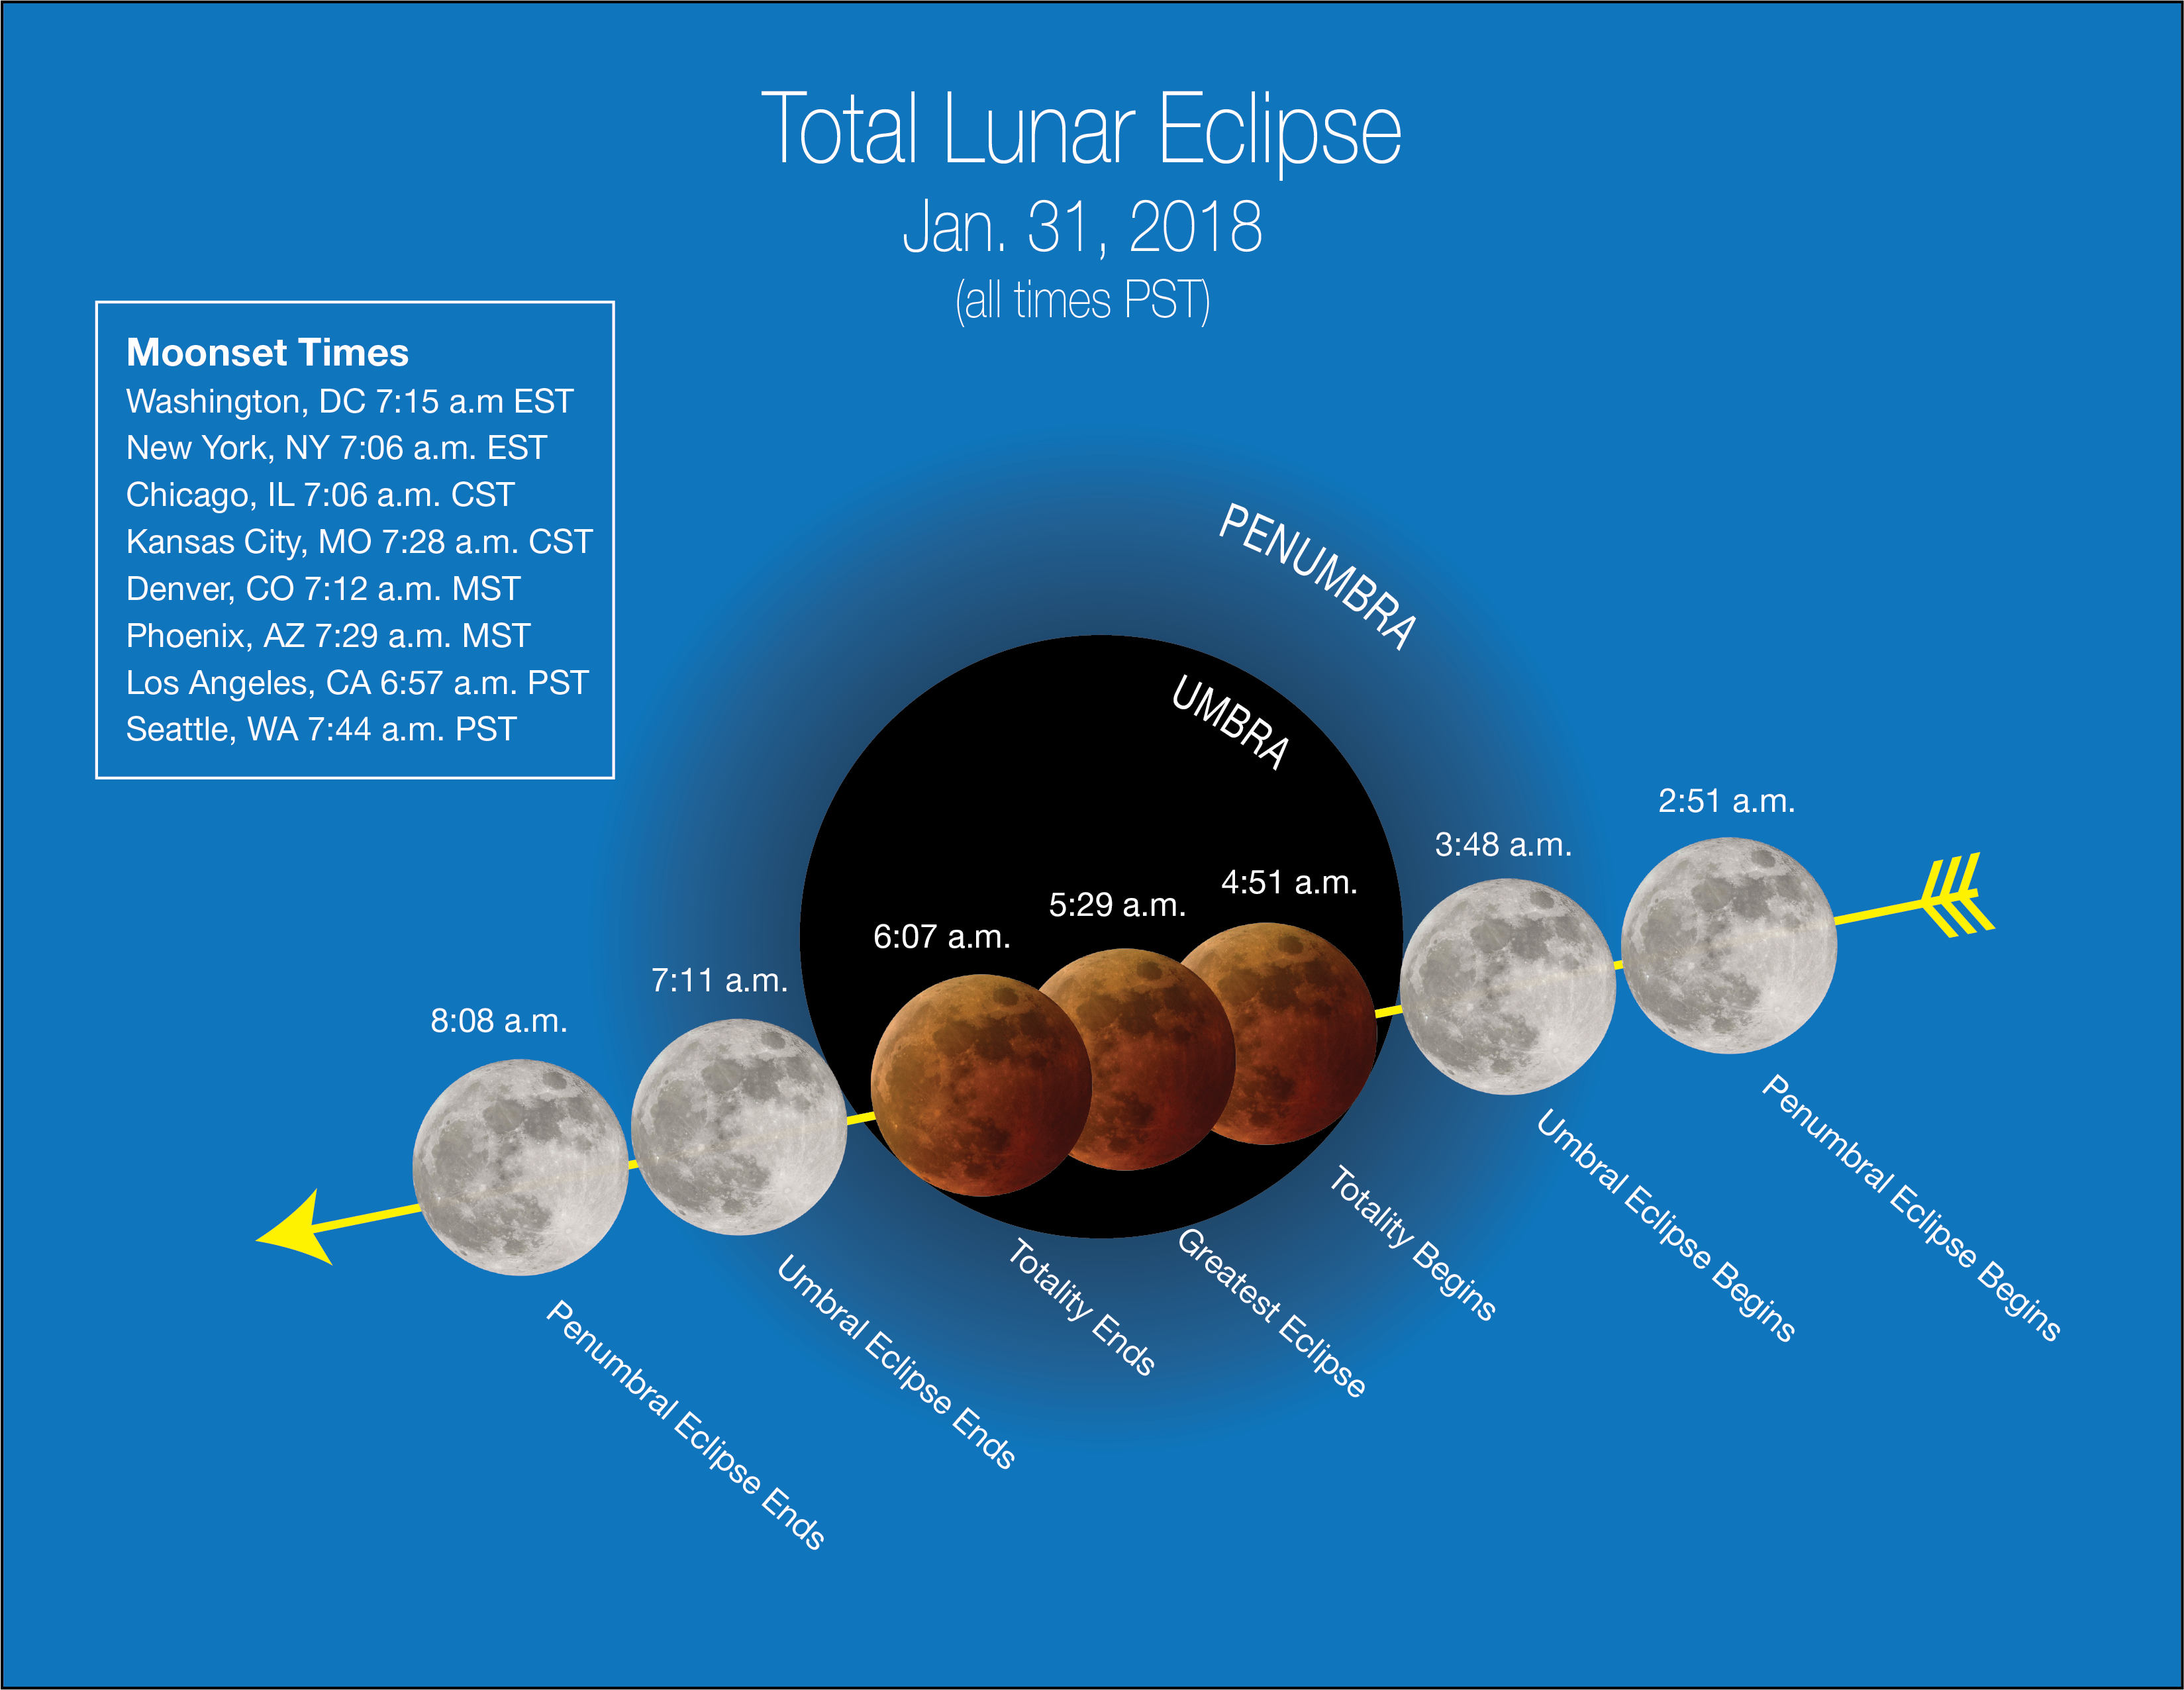 Image 4. Stages of the January 31, 2018, super blue blood moon are depicted in Pacific Time with moonset times for major cities across the U.S., which affect how much of the event viewers will see. While viewers along the East Coast will see only the initial stages of the eclipse before moonset, those in the West and Hawaii will see most or all of the lunar eclipse phases before dawn. Credits: NASA. [Click to enlarge.]